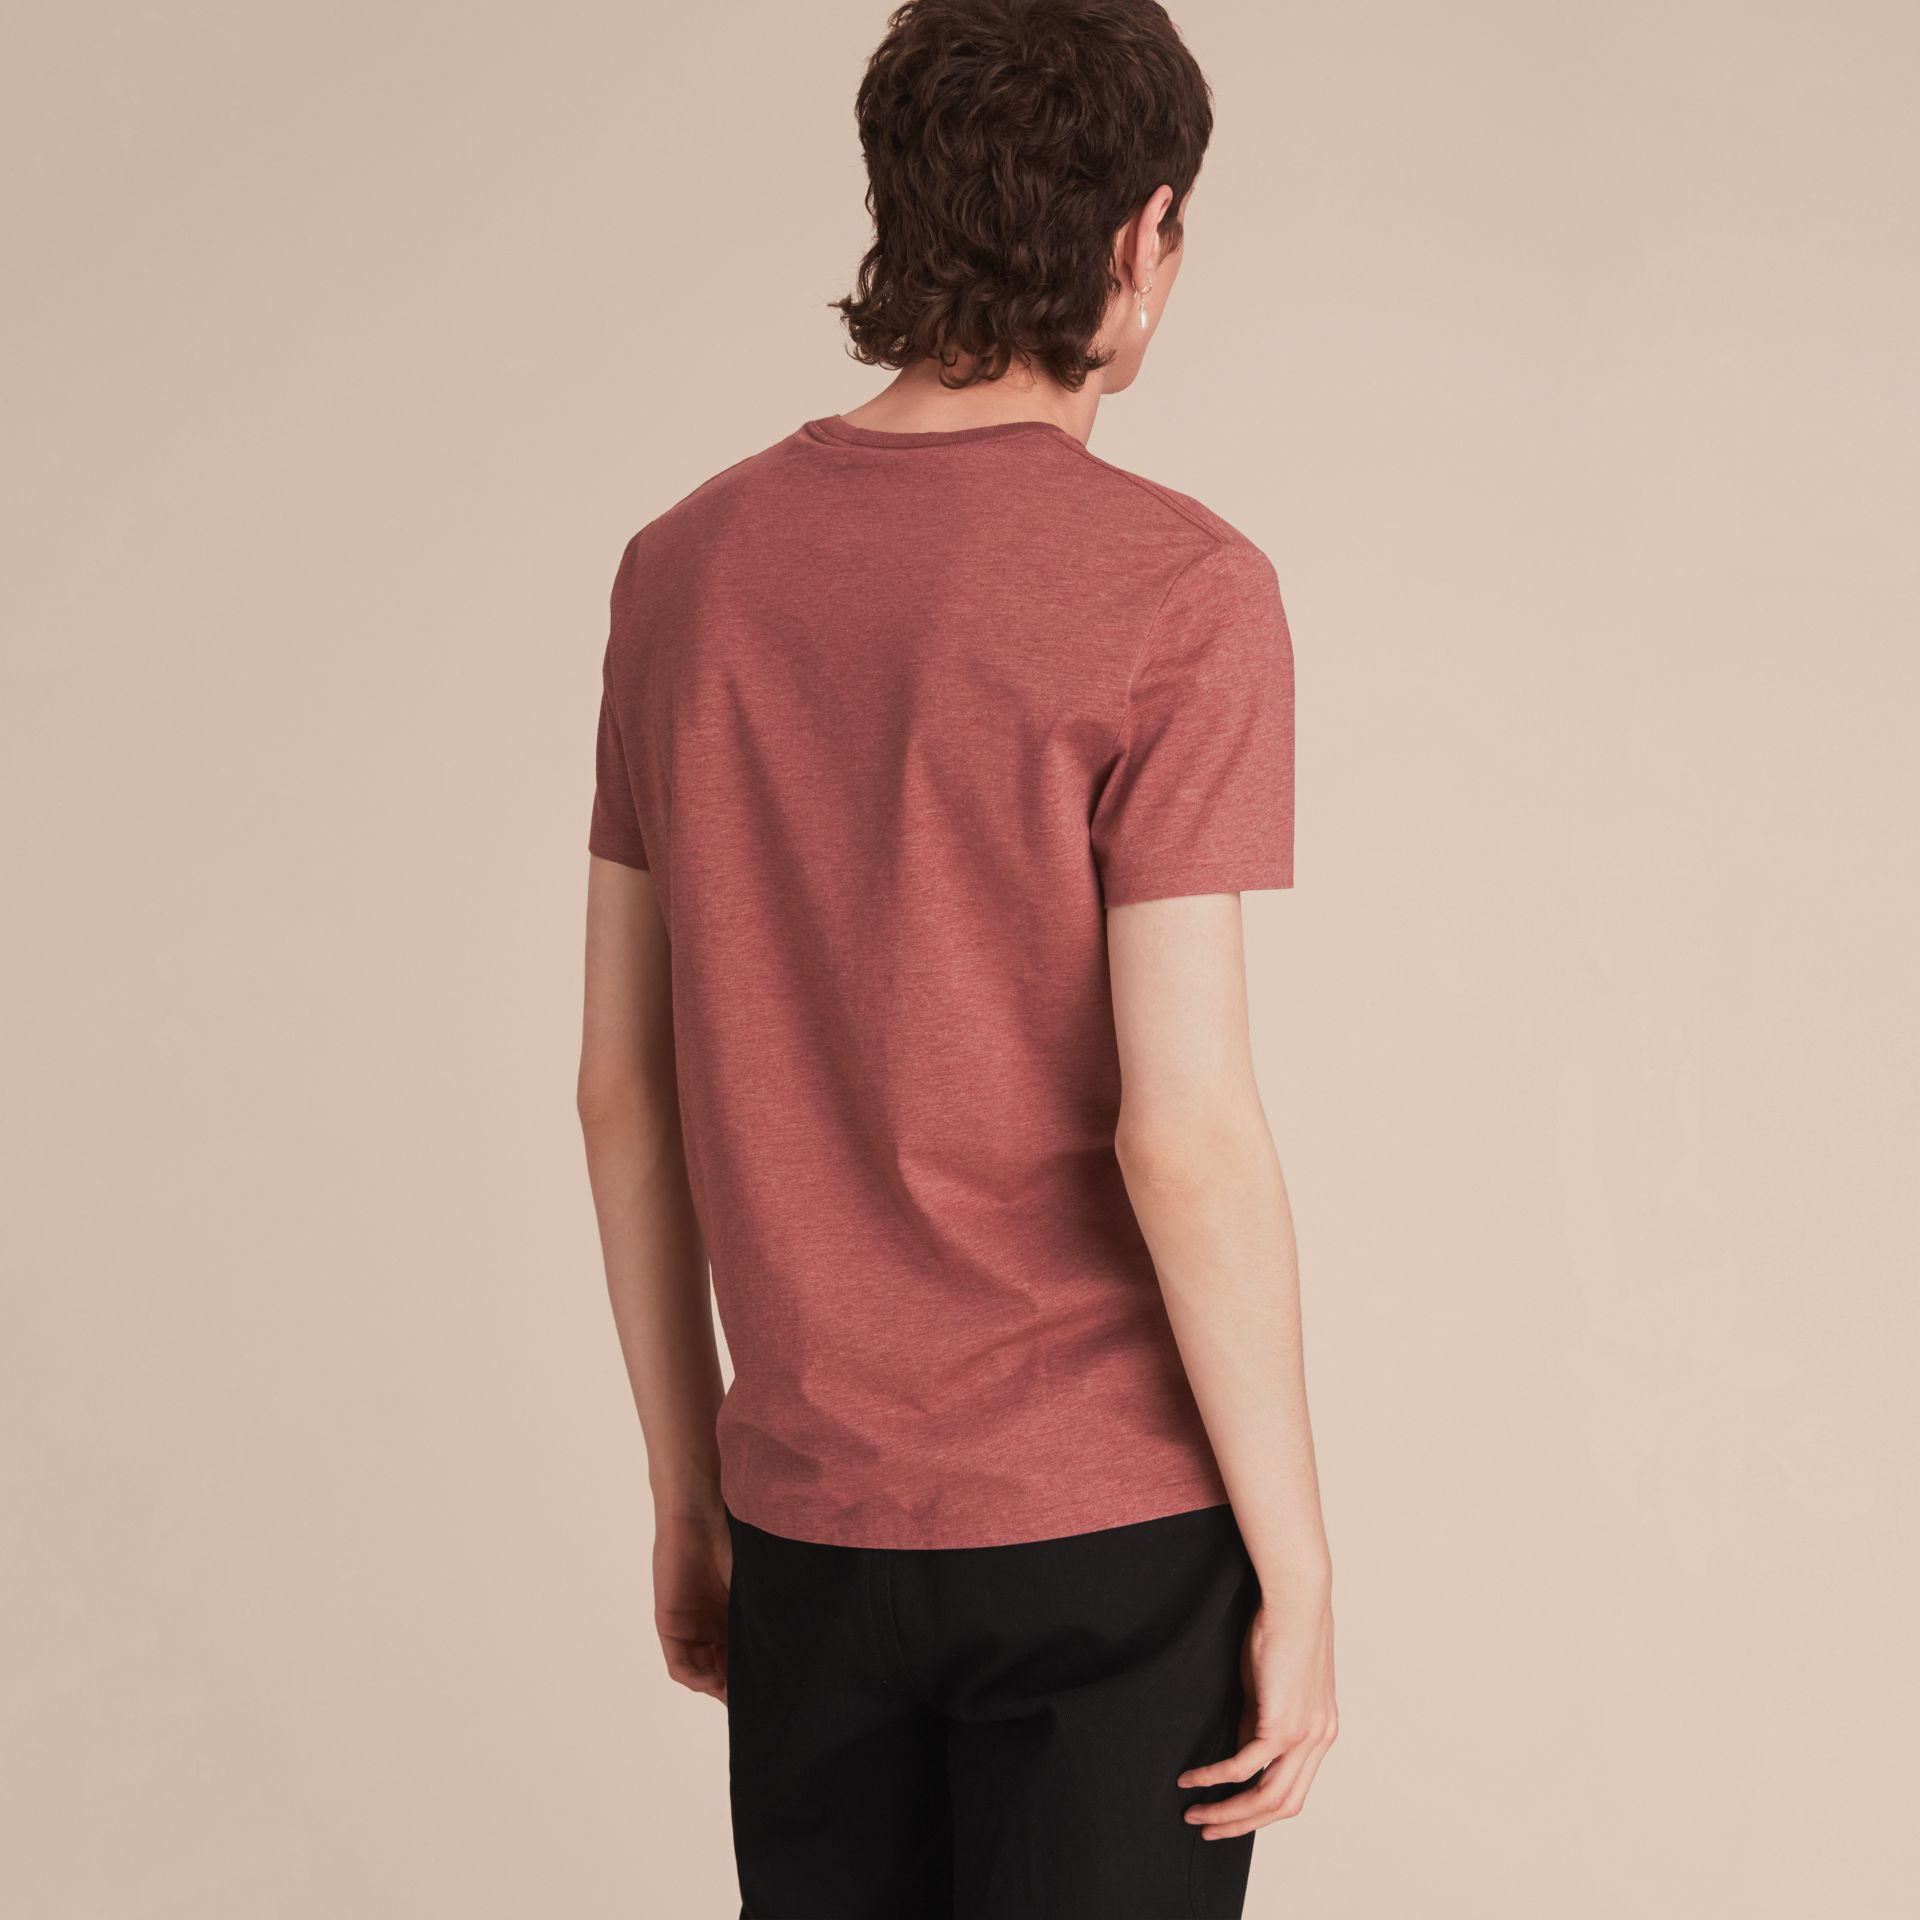 Cotton Jersey T-shirt in Russet Melange - Men | Burberry - gallery image 3